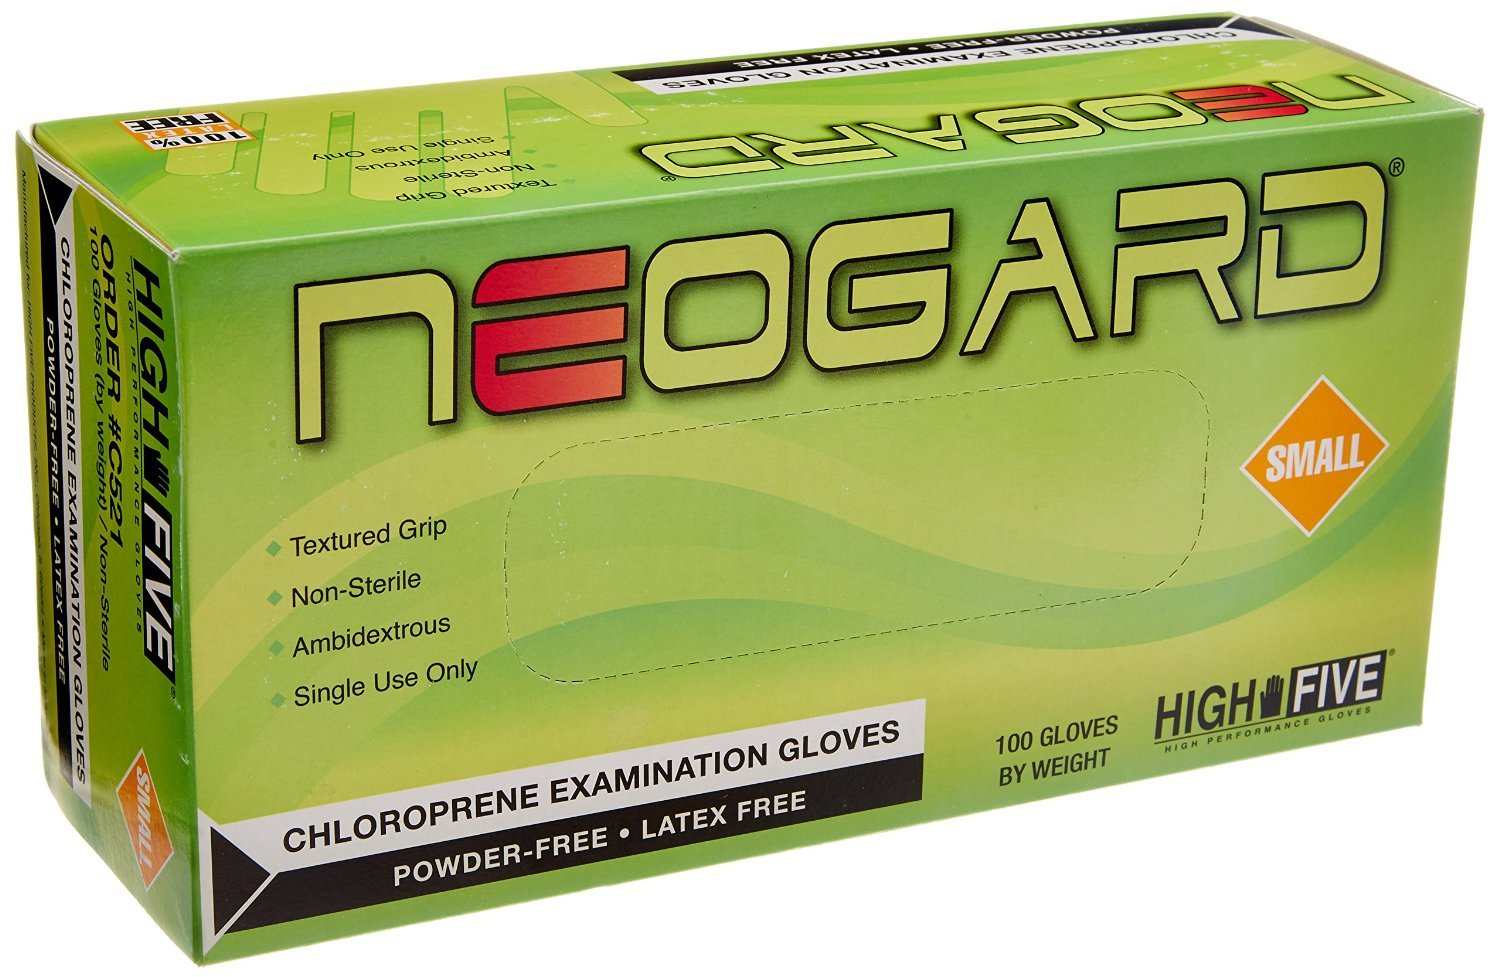 High Five Neogard C521 Chloroprene Exam Glove, Medium (Case of 1000)